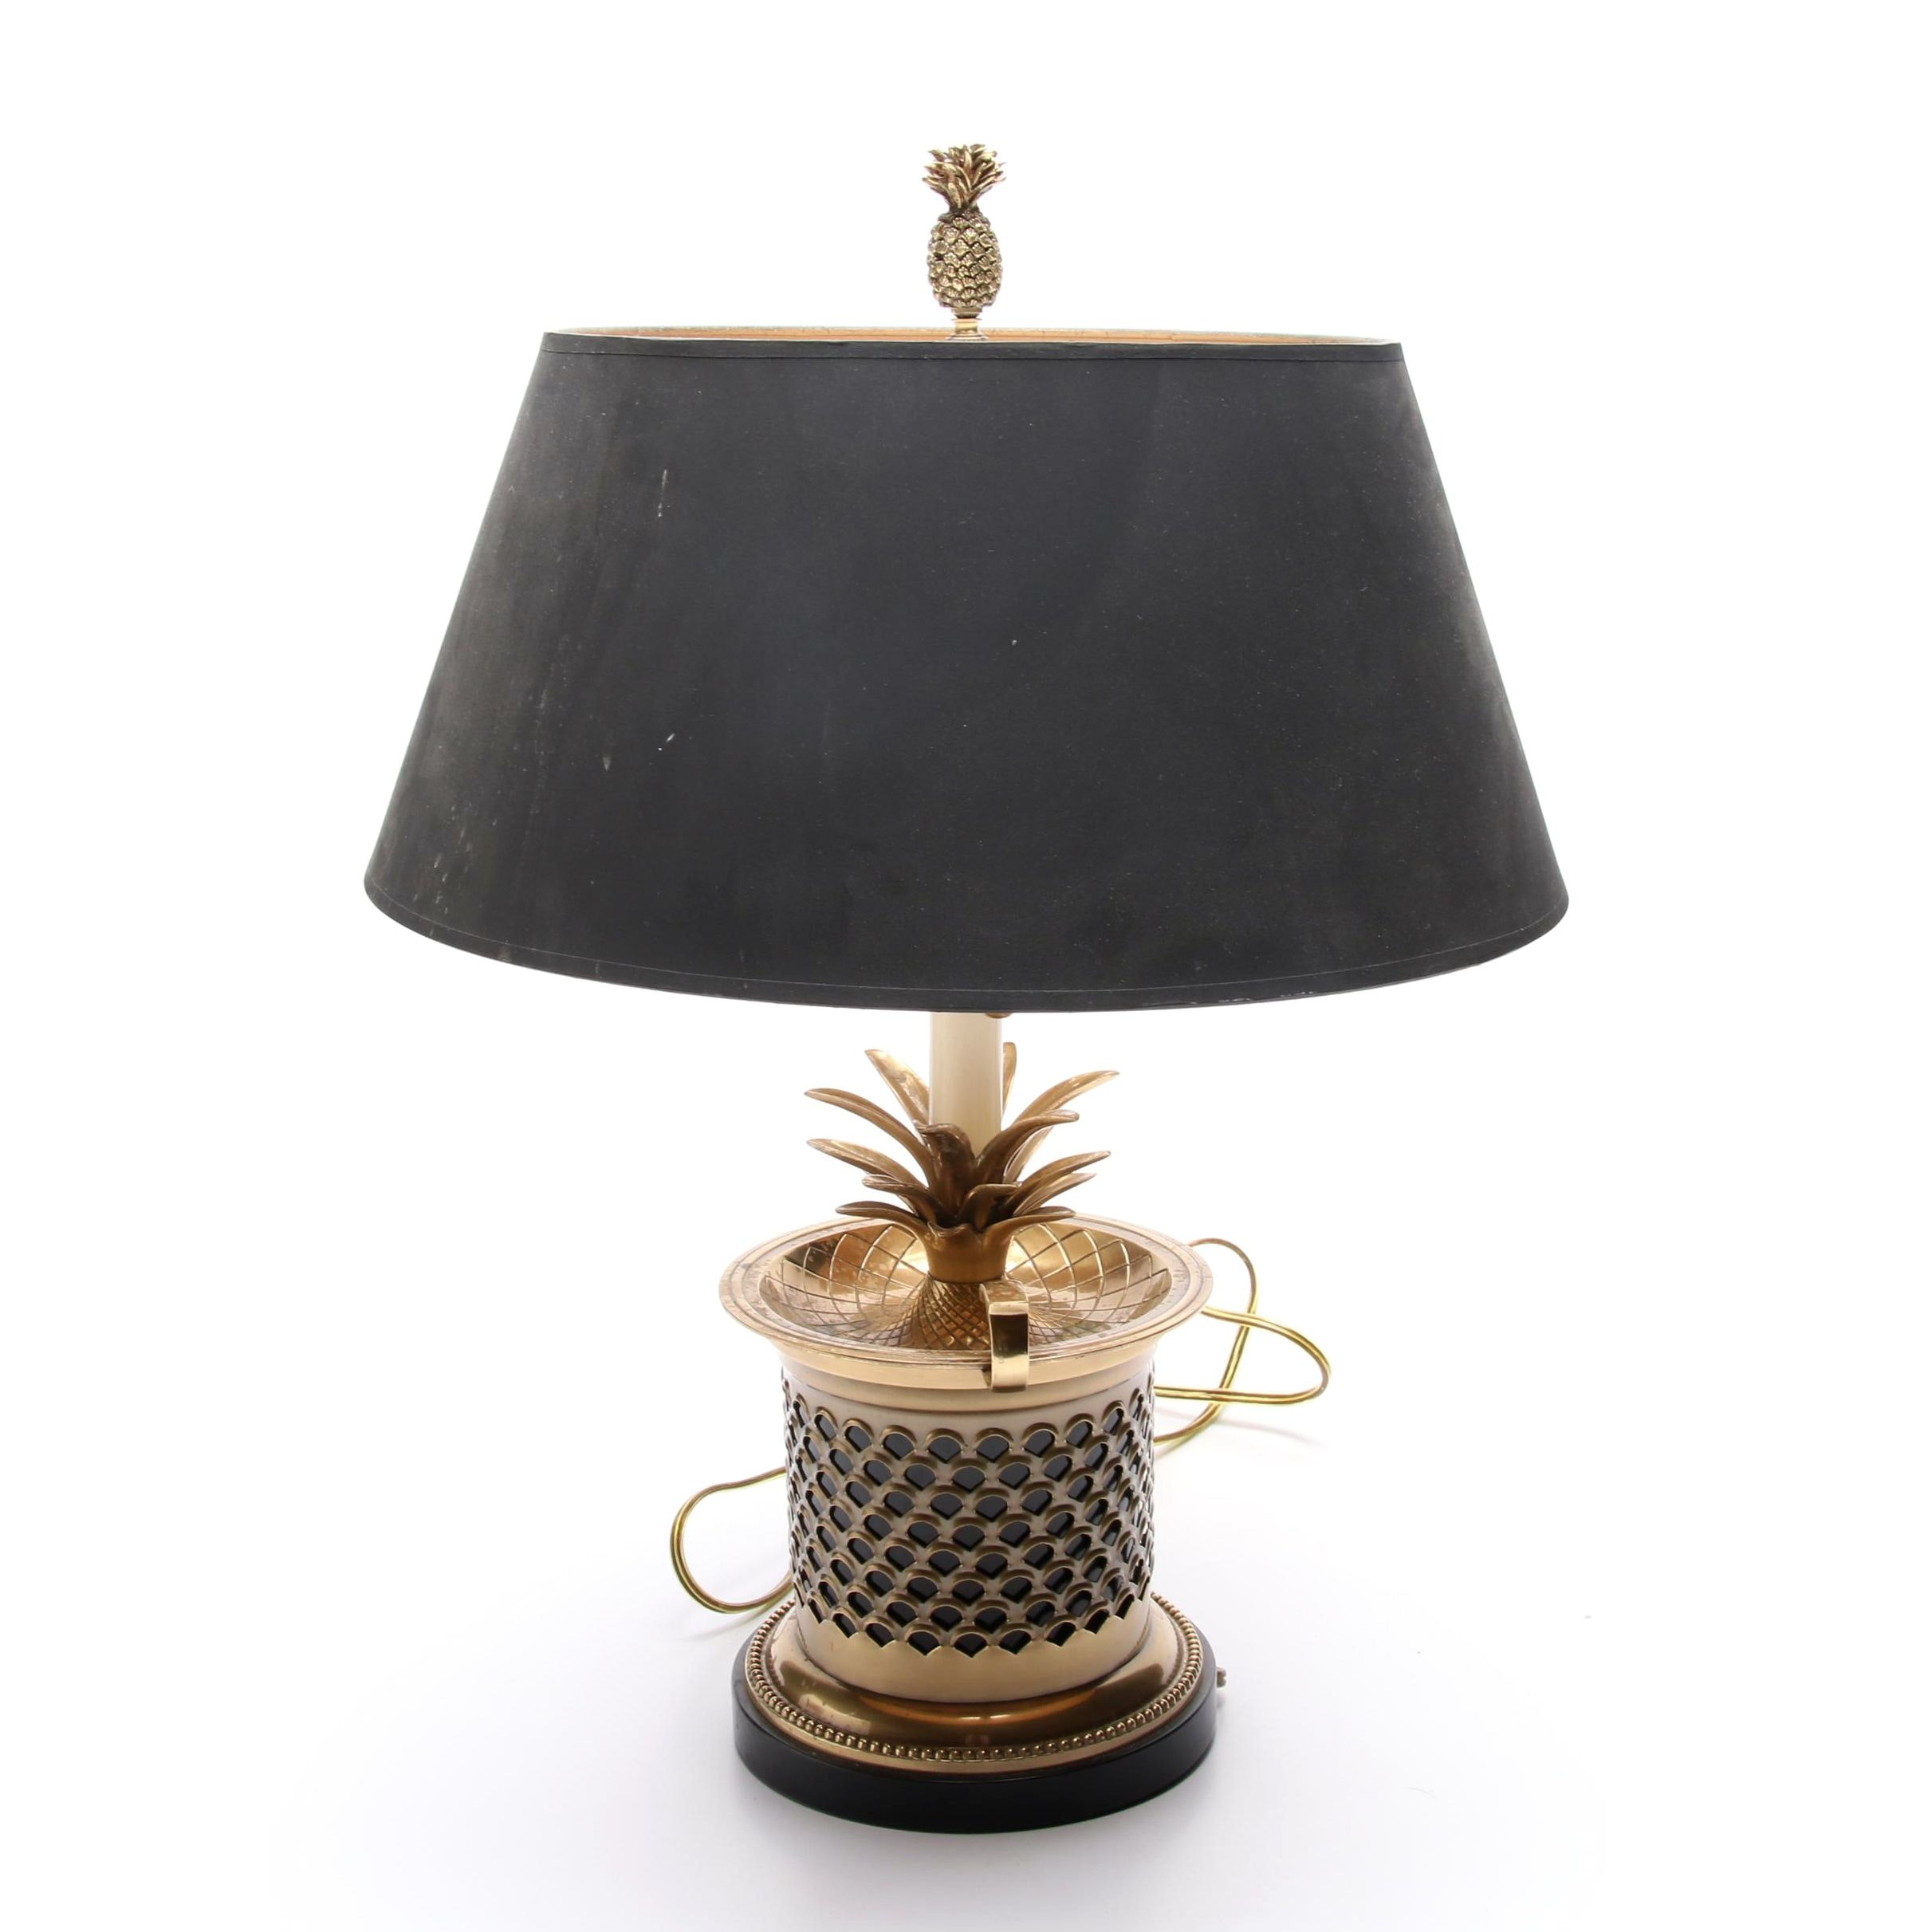 Frederick Cooper Brass Pineapple Table Lamp with Black Shade